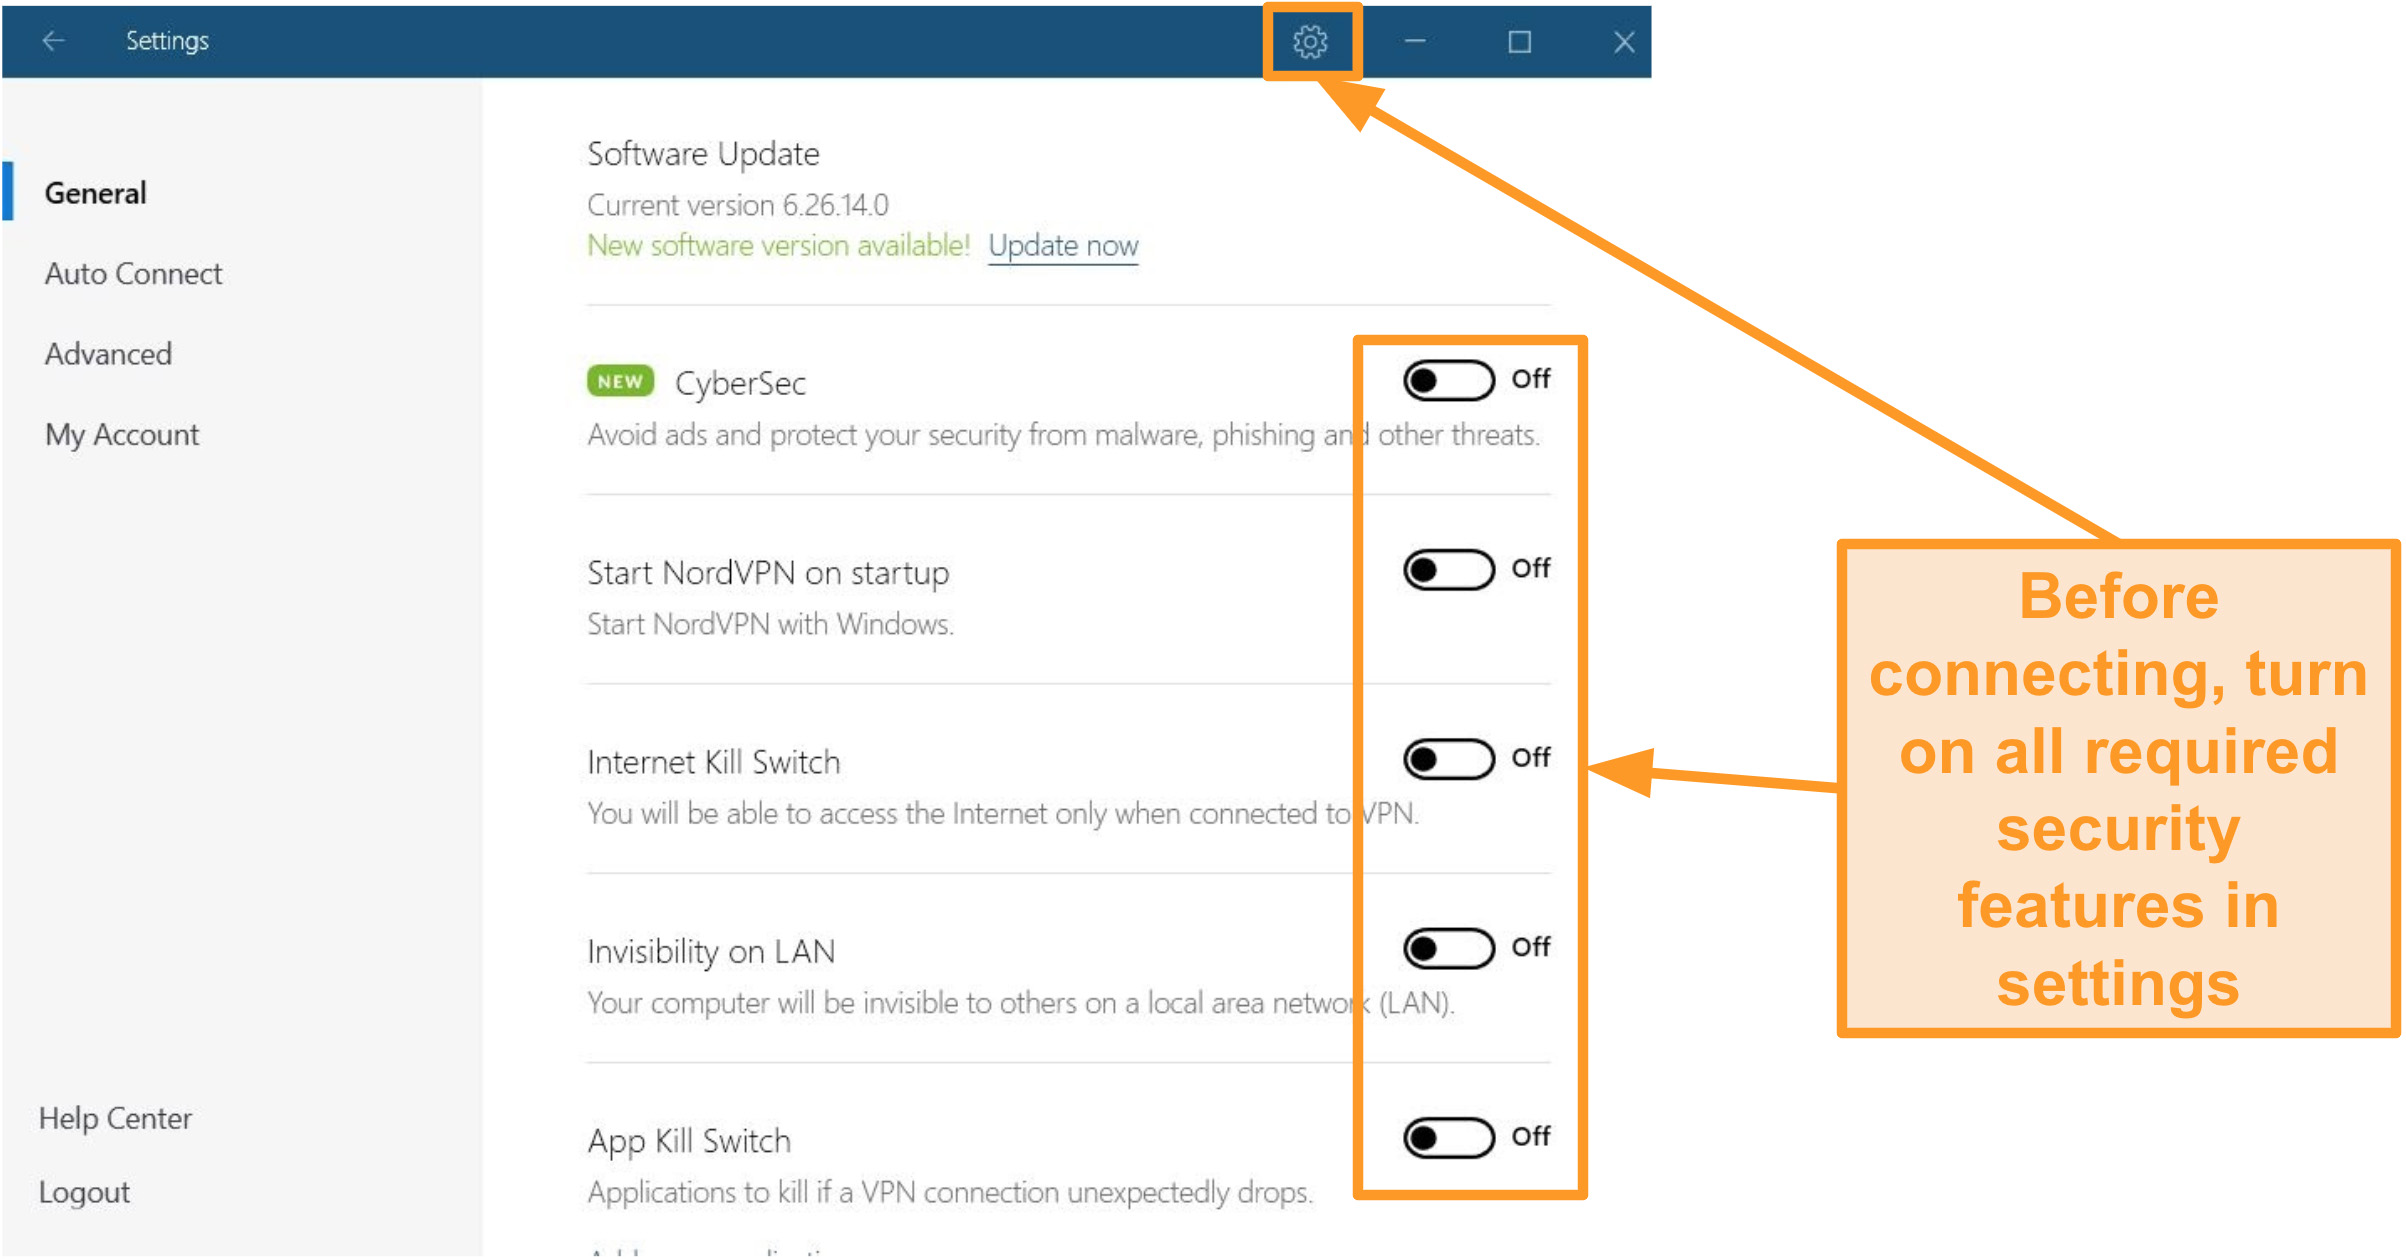 Screenshot of NordVPN's security options in settings